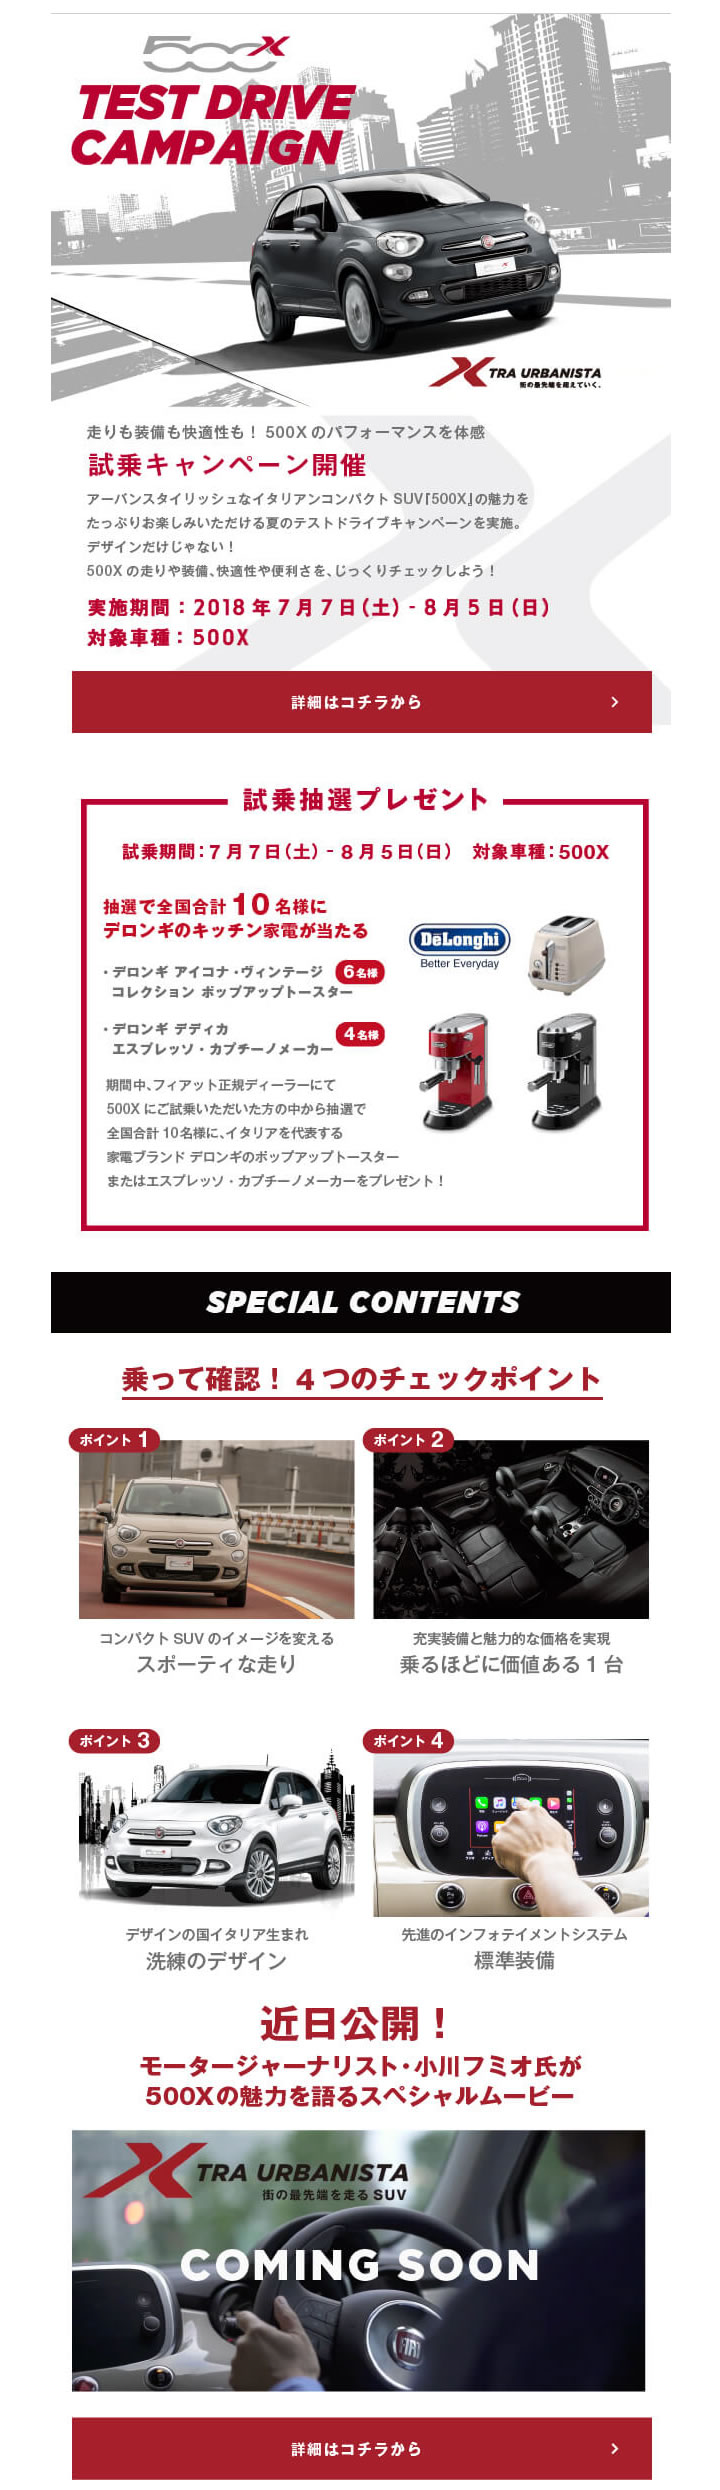 500X TEST DRIVE CAMPAIGN 試乗キャンペーンの開催!実施期間:2018年7月7日(土)-8月5日(日)